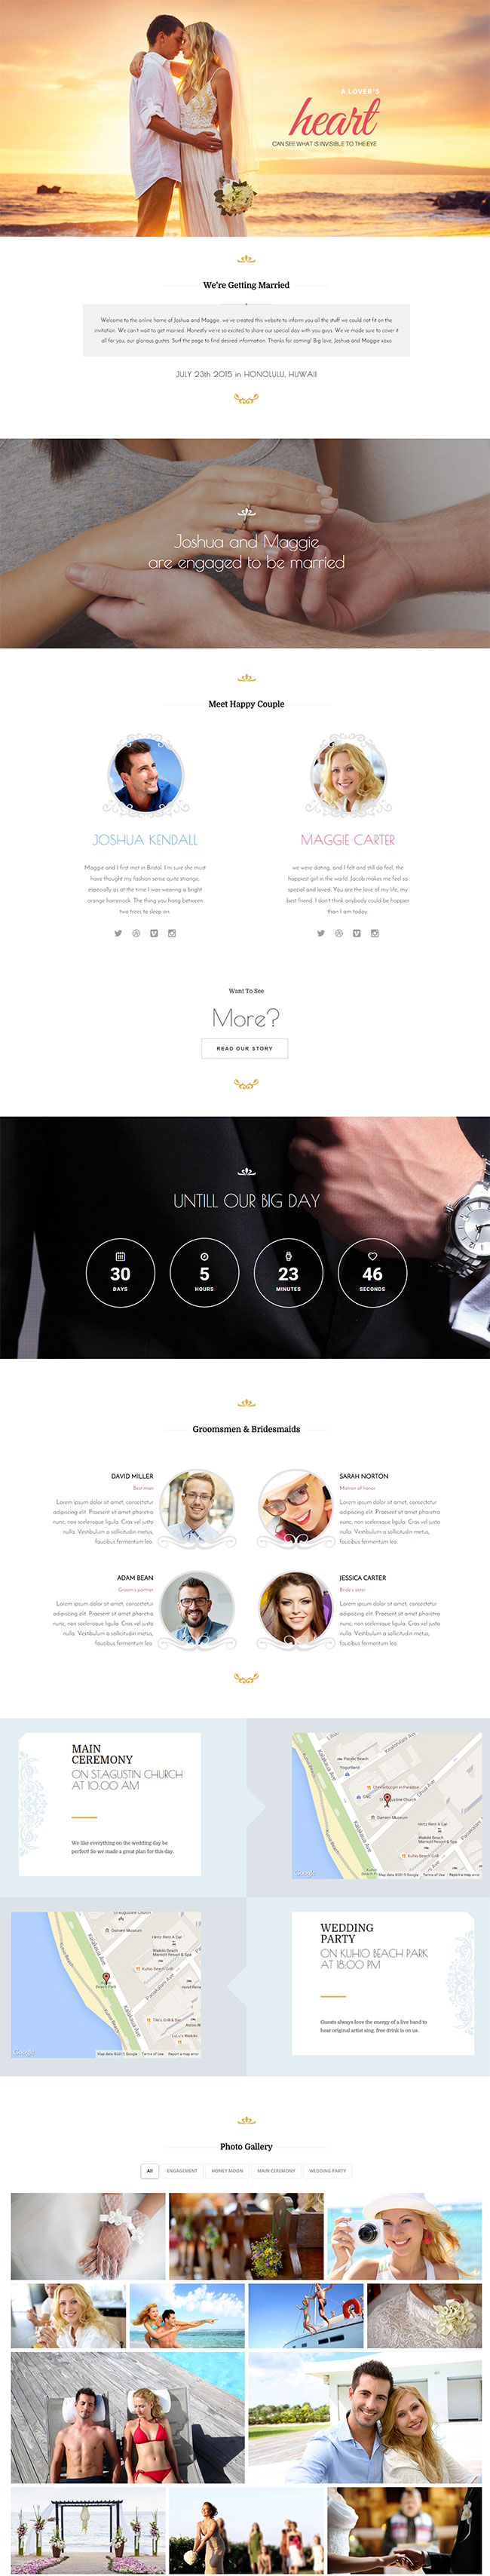 40+ Sweet Responsive Wedding & Marriage WordPress Themes 2017 ...